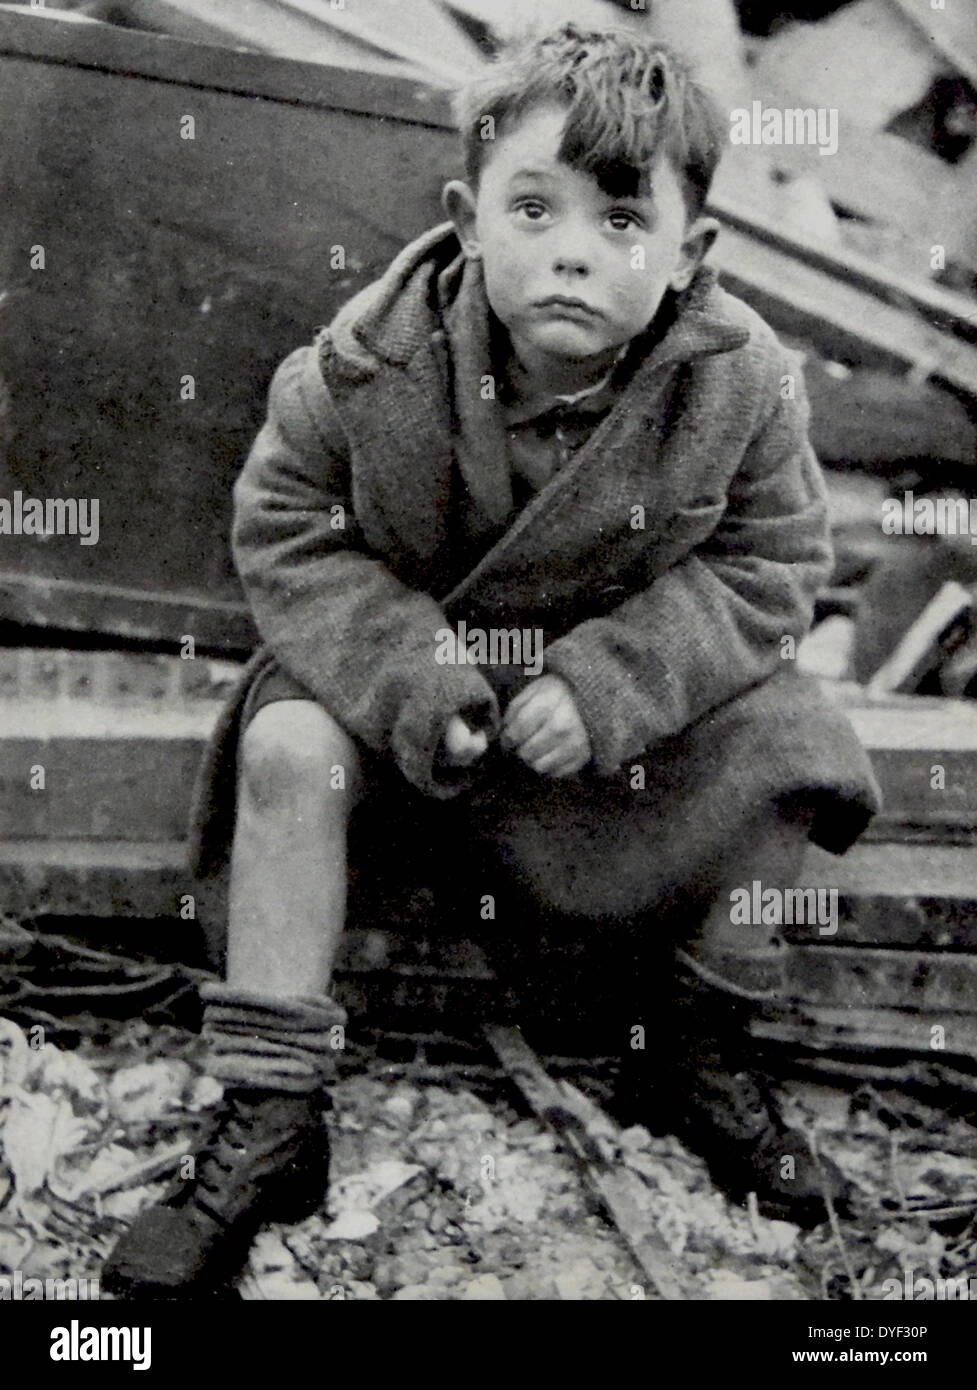 An orphaned child looks shocked after surviving the Blitz on London, by German V2 Rockets 1944 Stock Photo